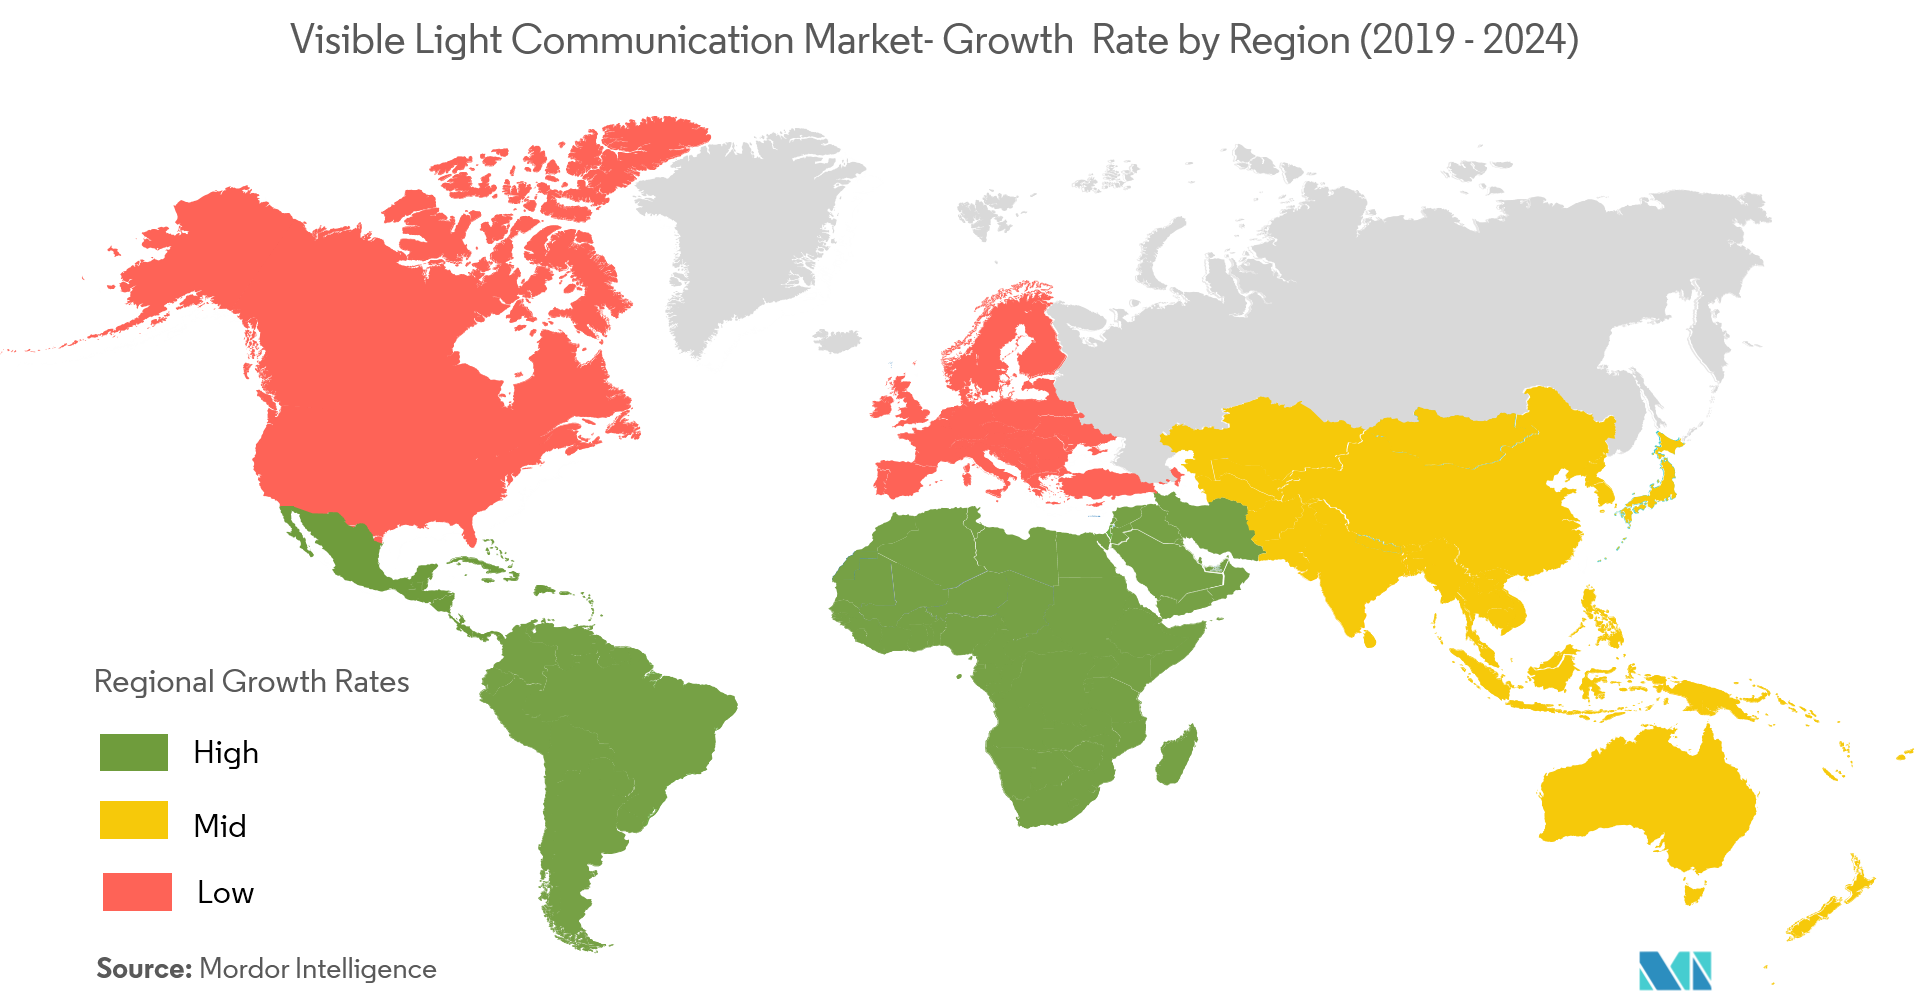 Visible Light Communication Market Growth Rate By Region